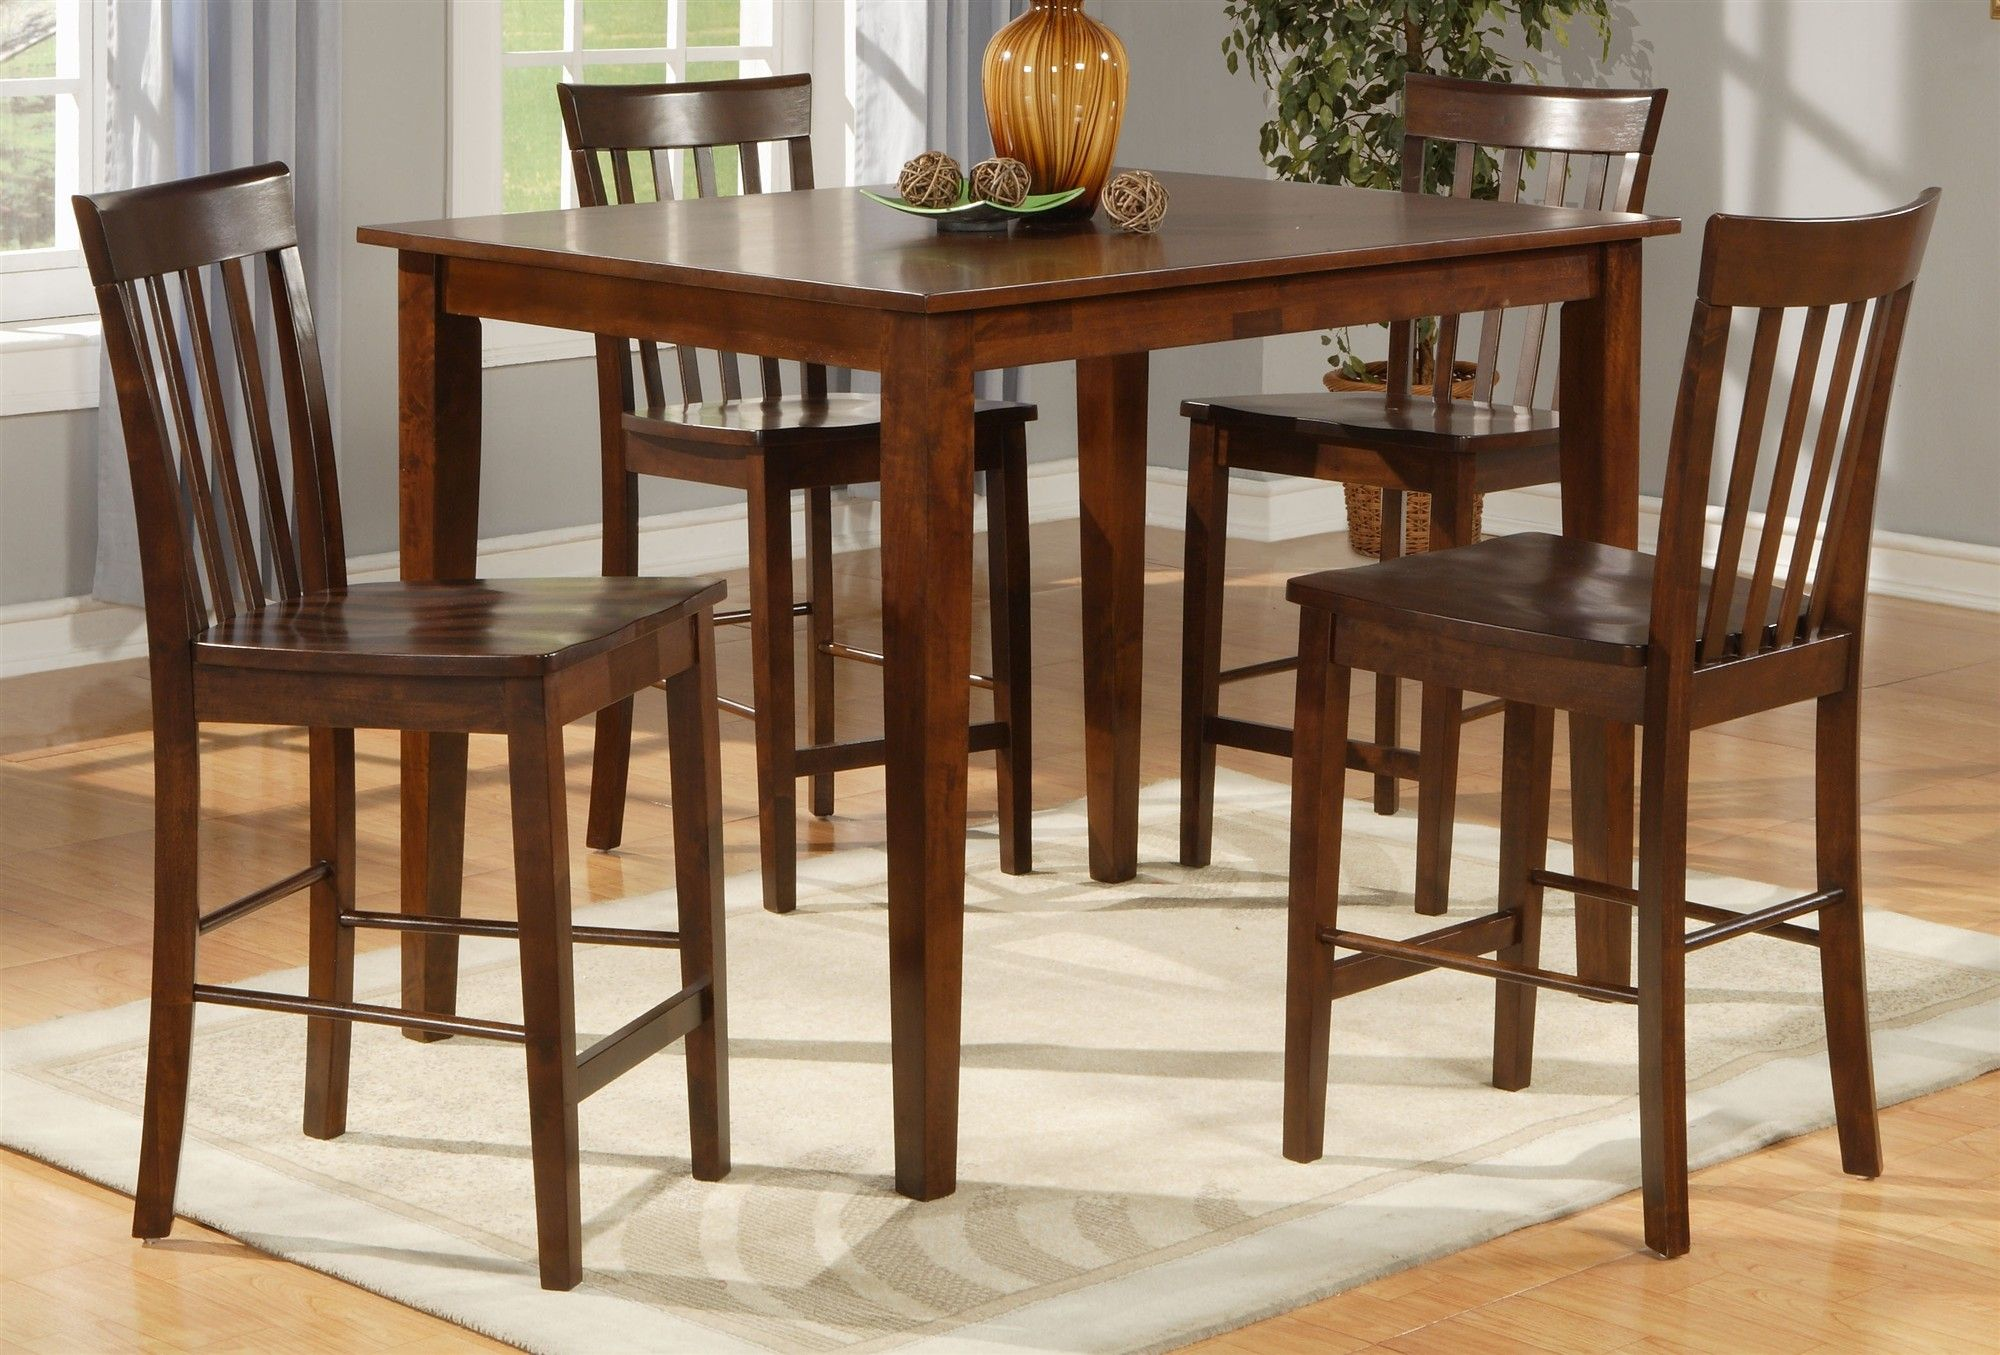 Bust Of Square Dining Table For 4